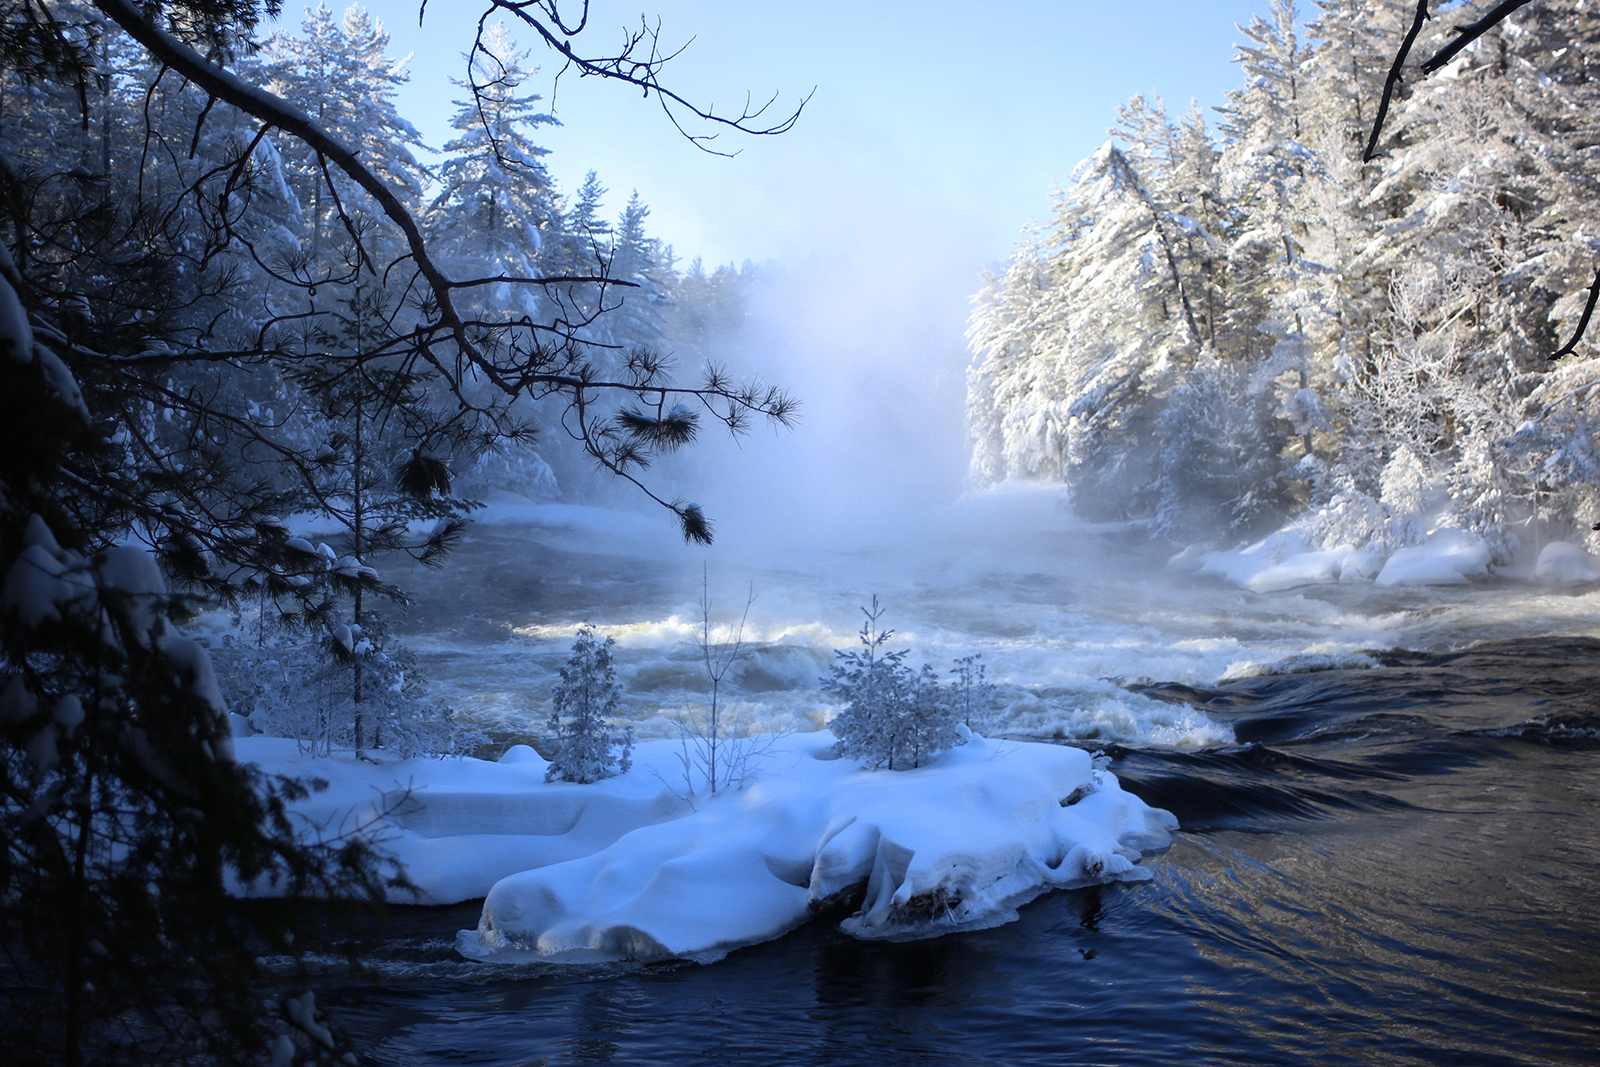 A rushing river passes snow-and-ice-covered pine trees